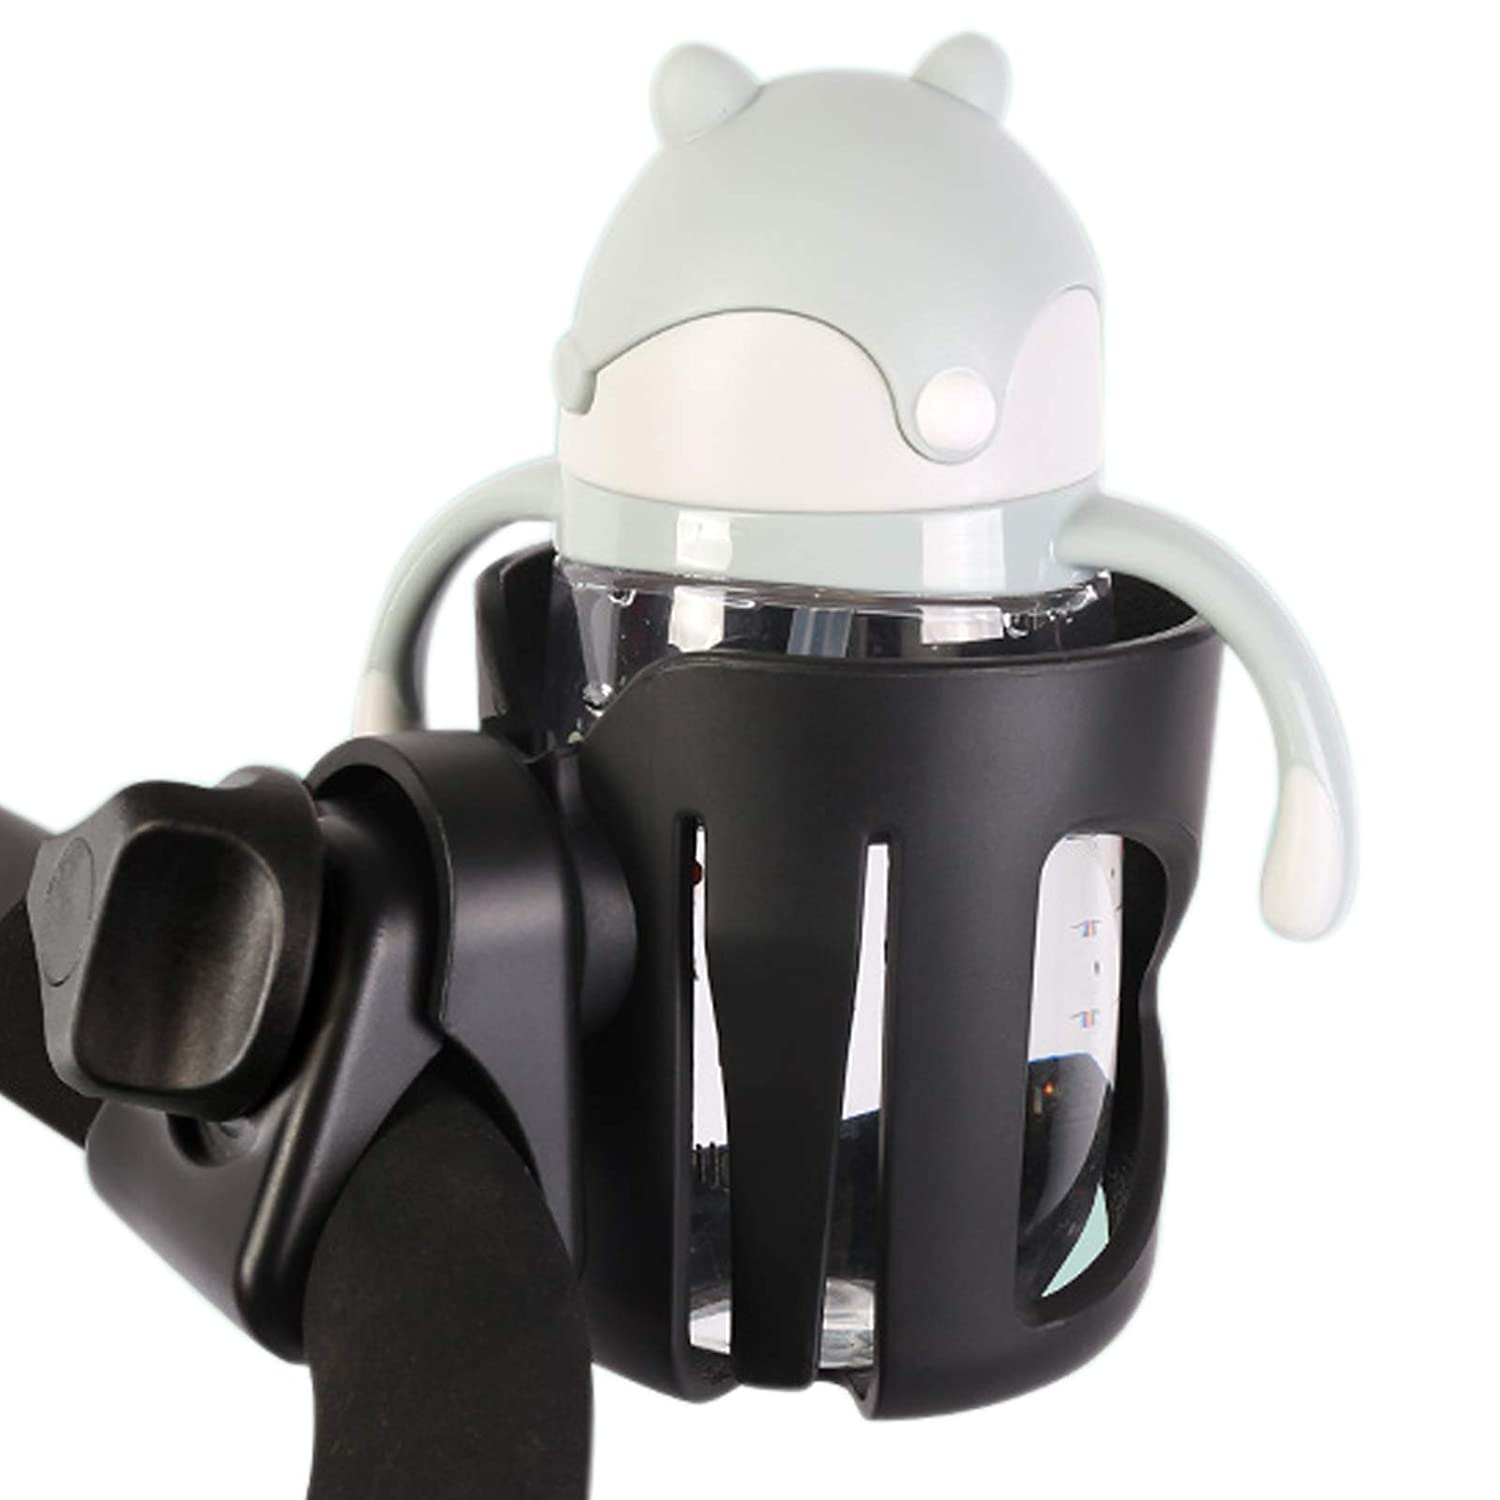 Adjustable Stroller Cup Holder, Rotating Cup Holder, Non-Slip Bike Cup Holder, Wheelchair Cup Holder, Universal Baby Bottle Holder Fits Every Vista, Curz, and Minu Model: Baby